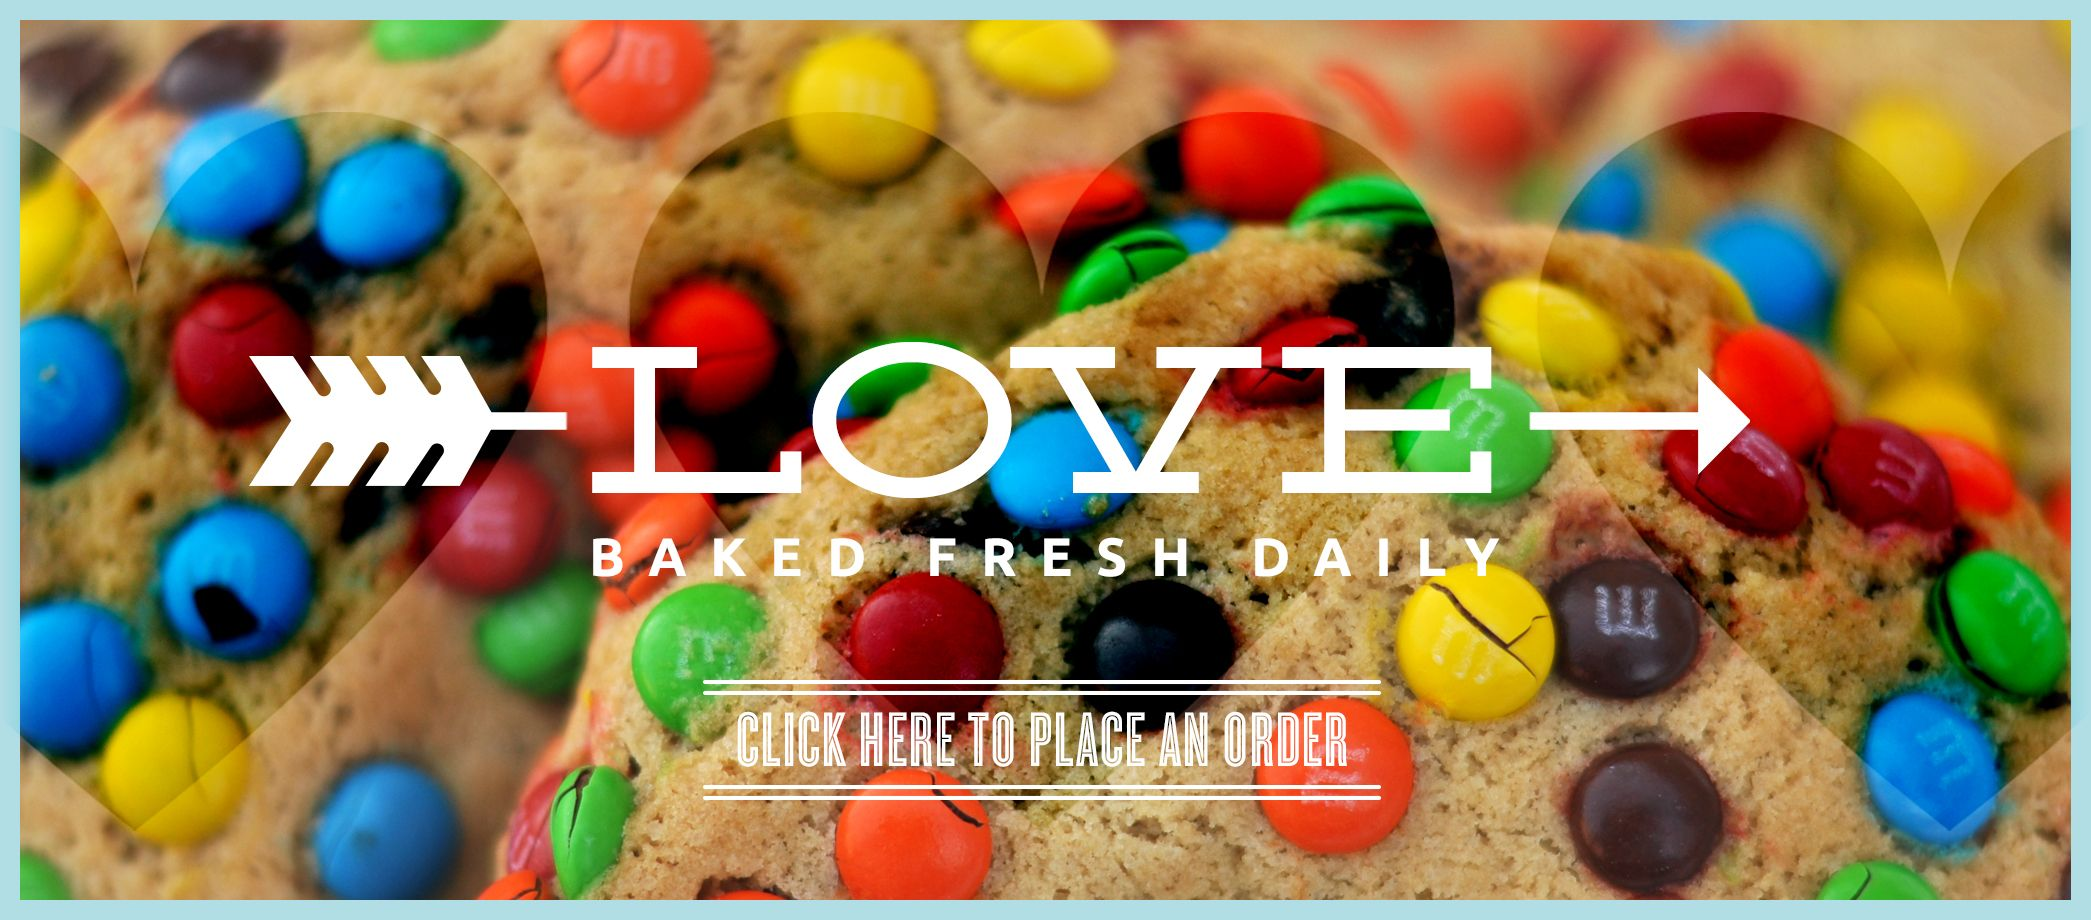 Dallas texas award winning bakery with cakes cookies